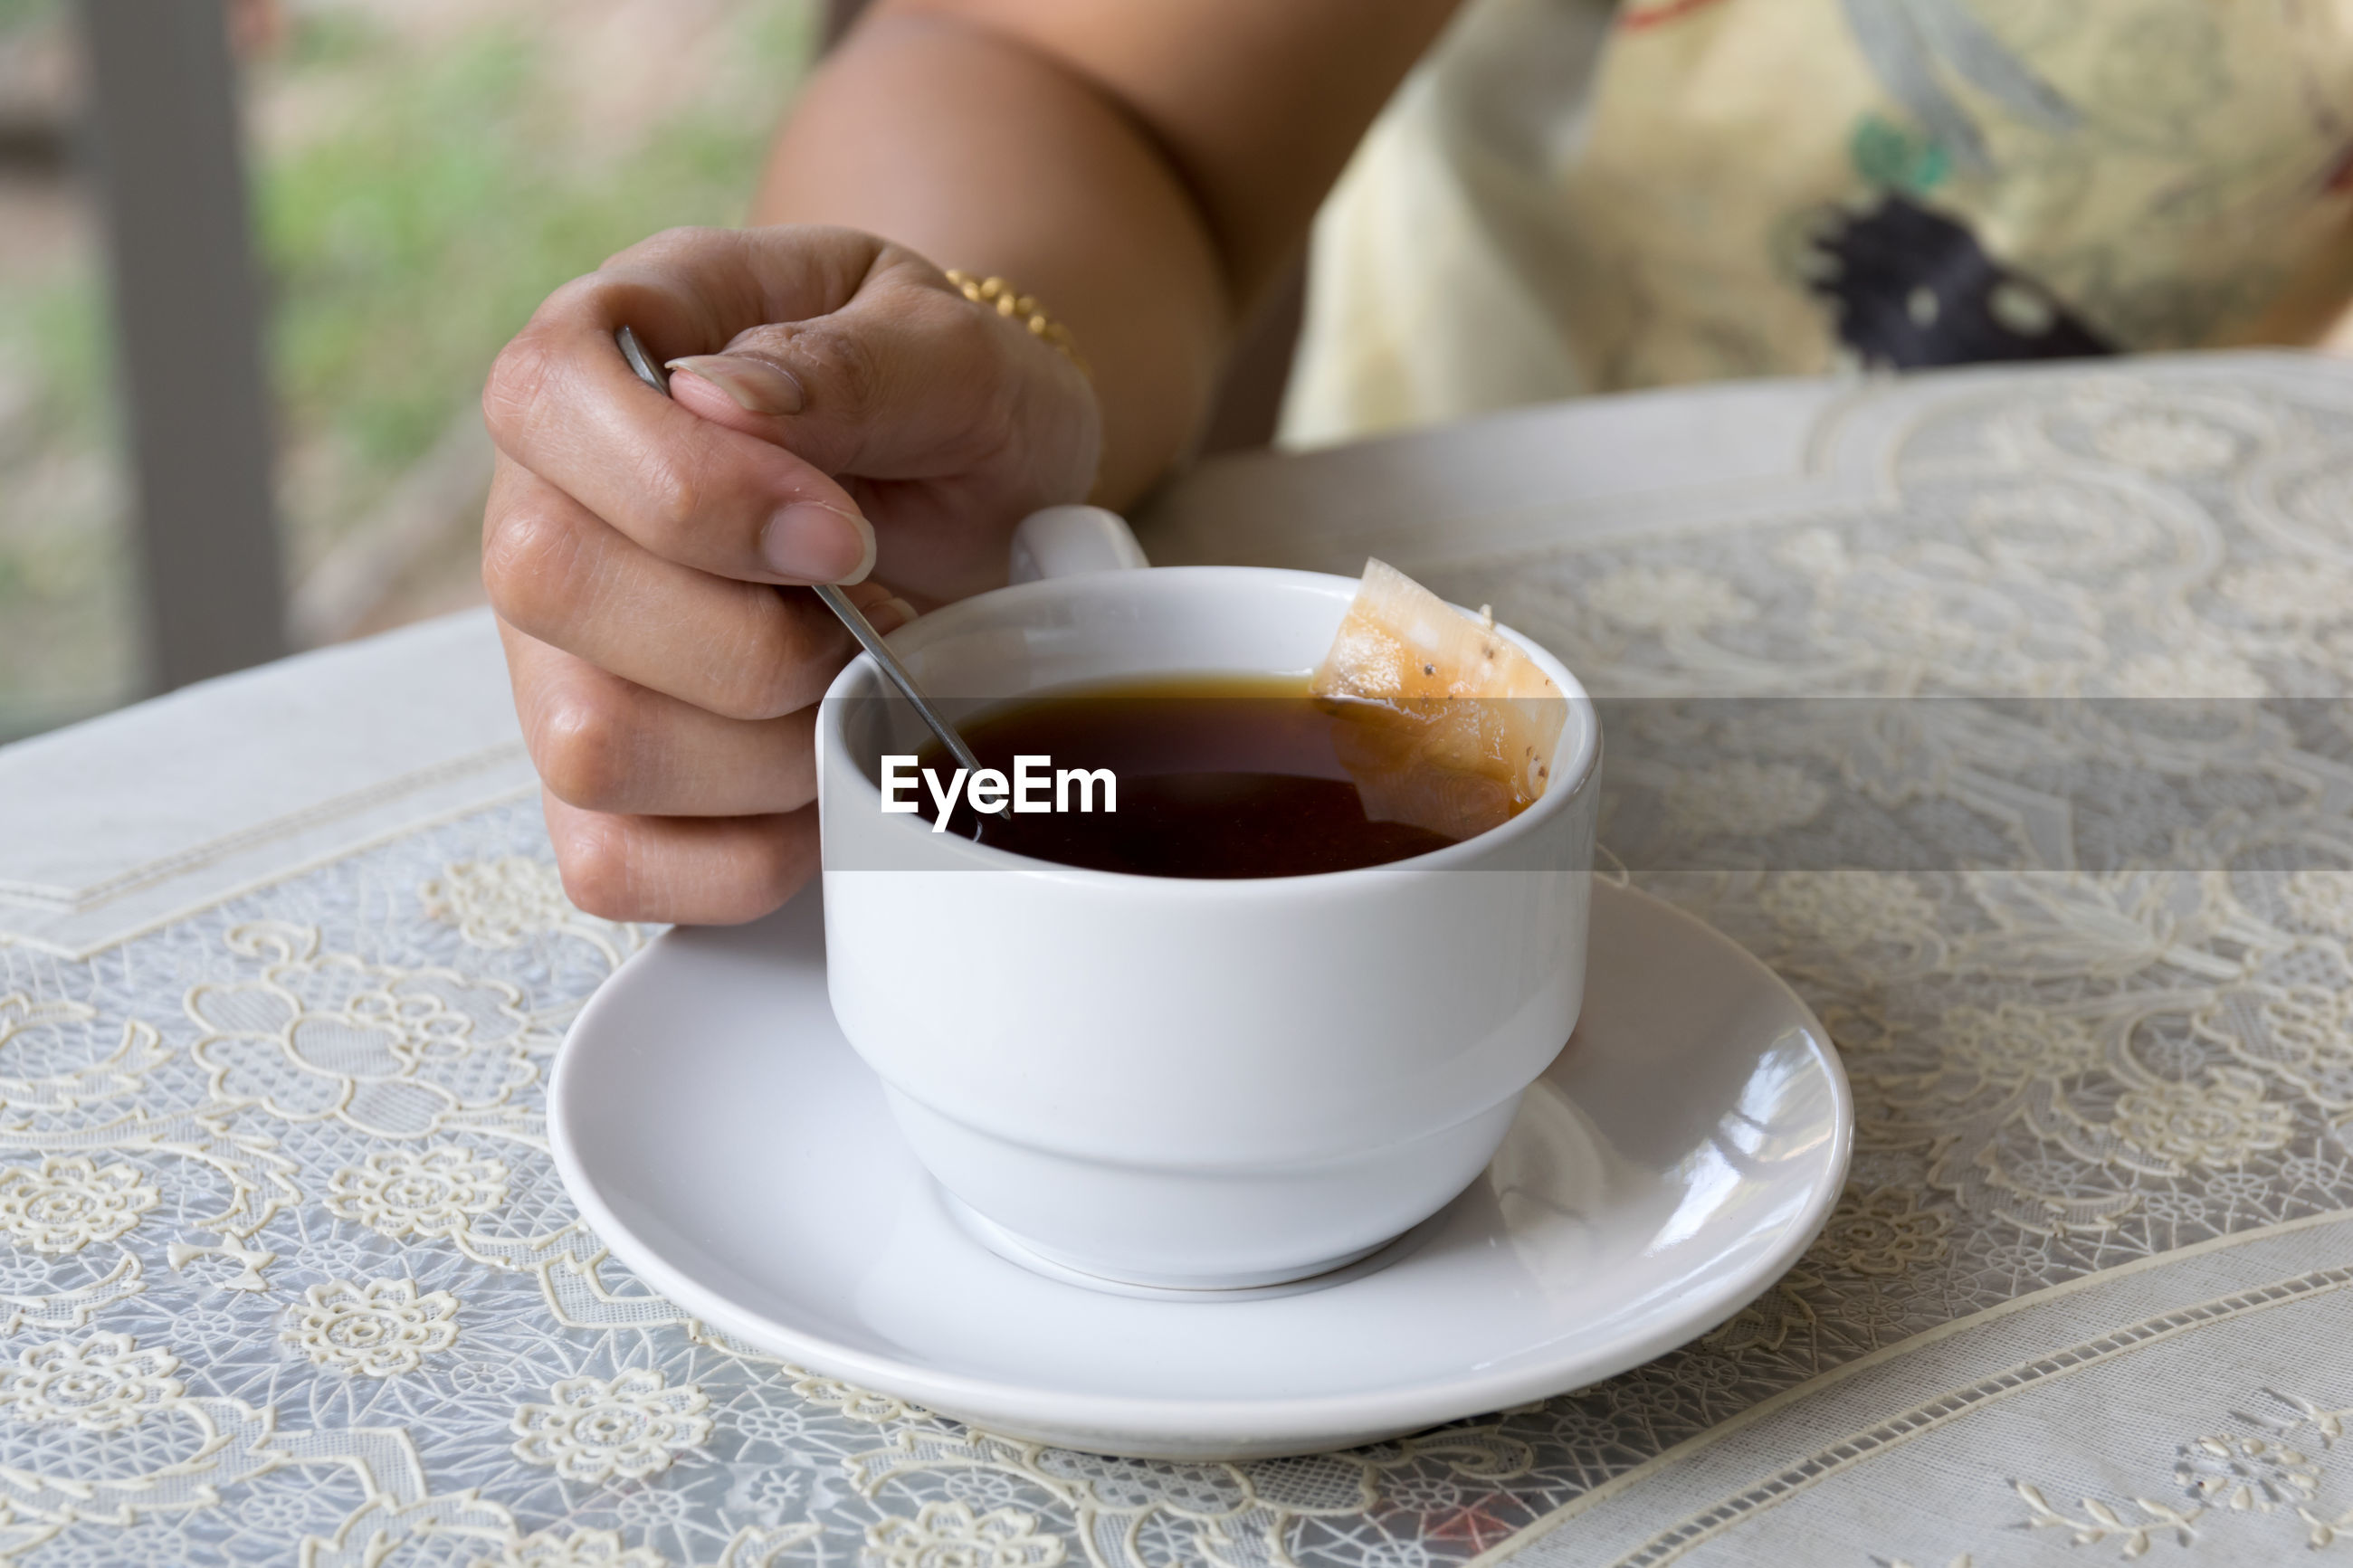 CROPPED IMAGE OF PERSON HOLDING COFFEE CUP